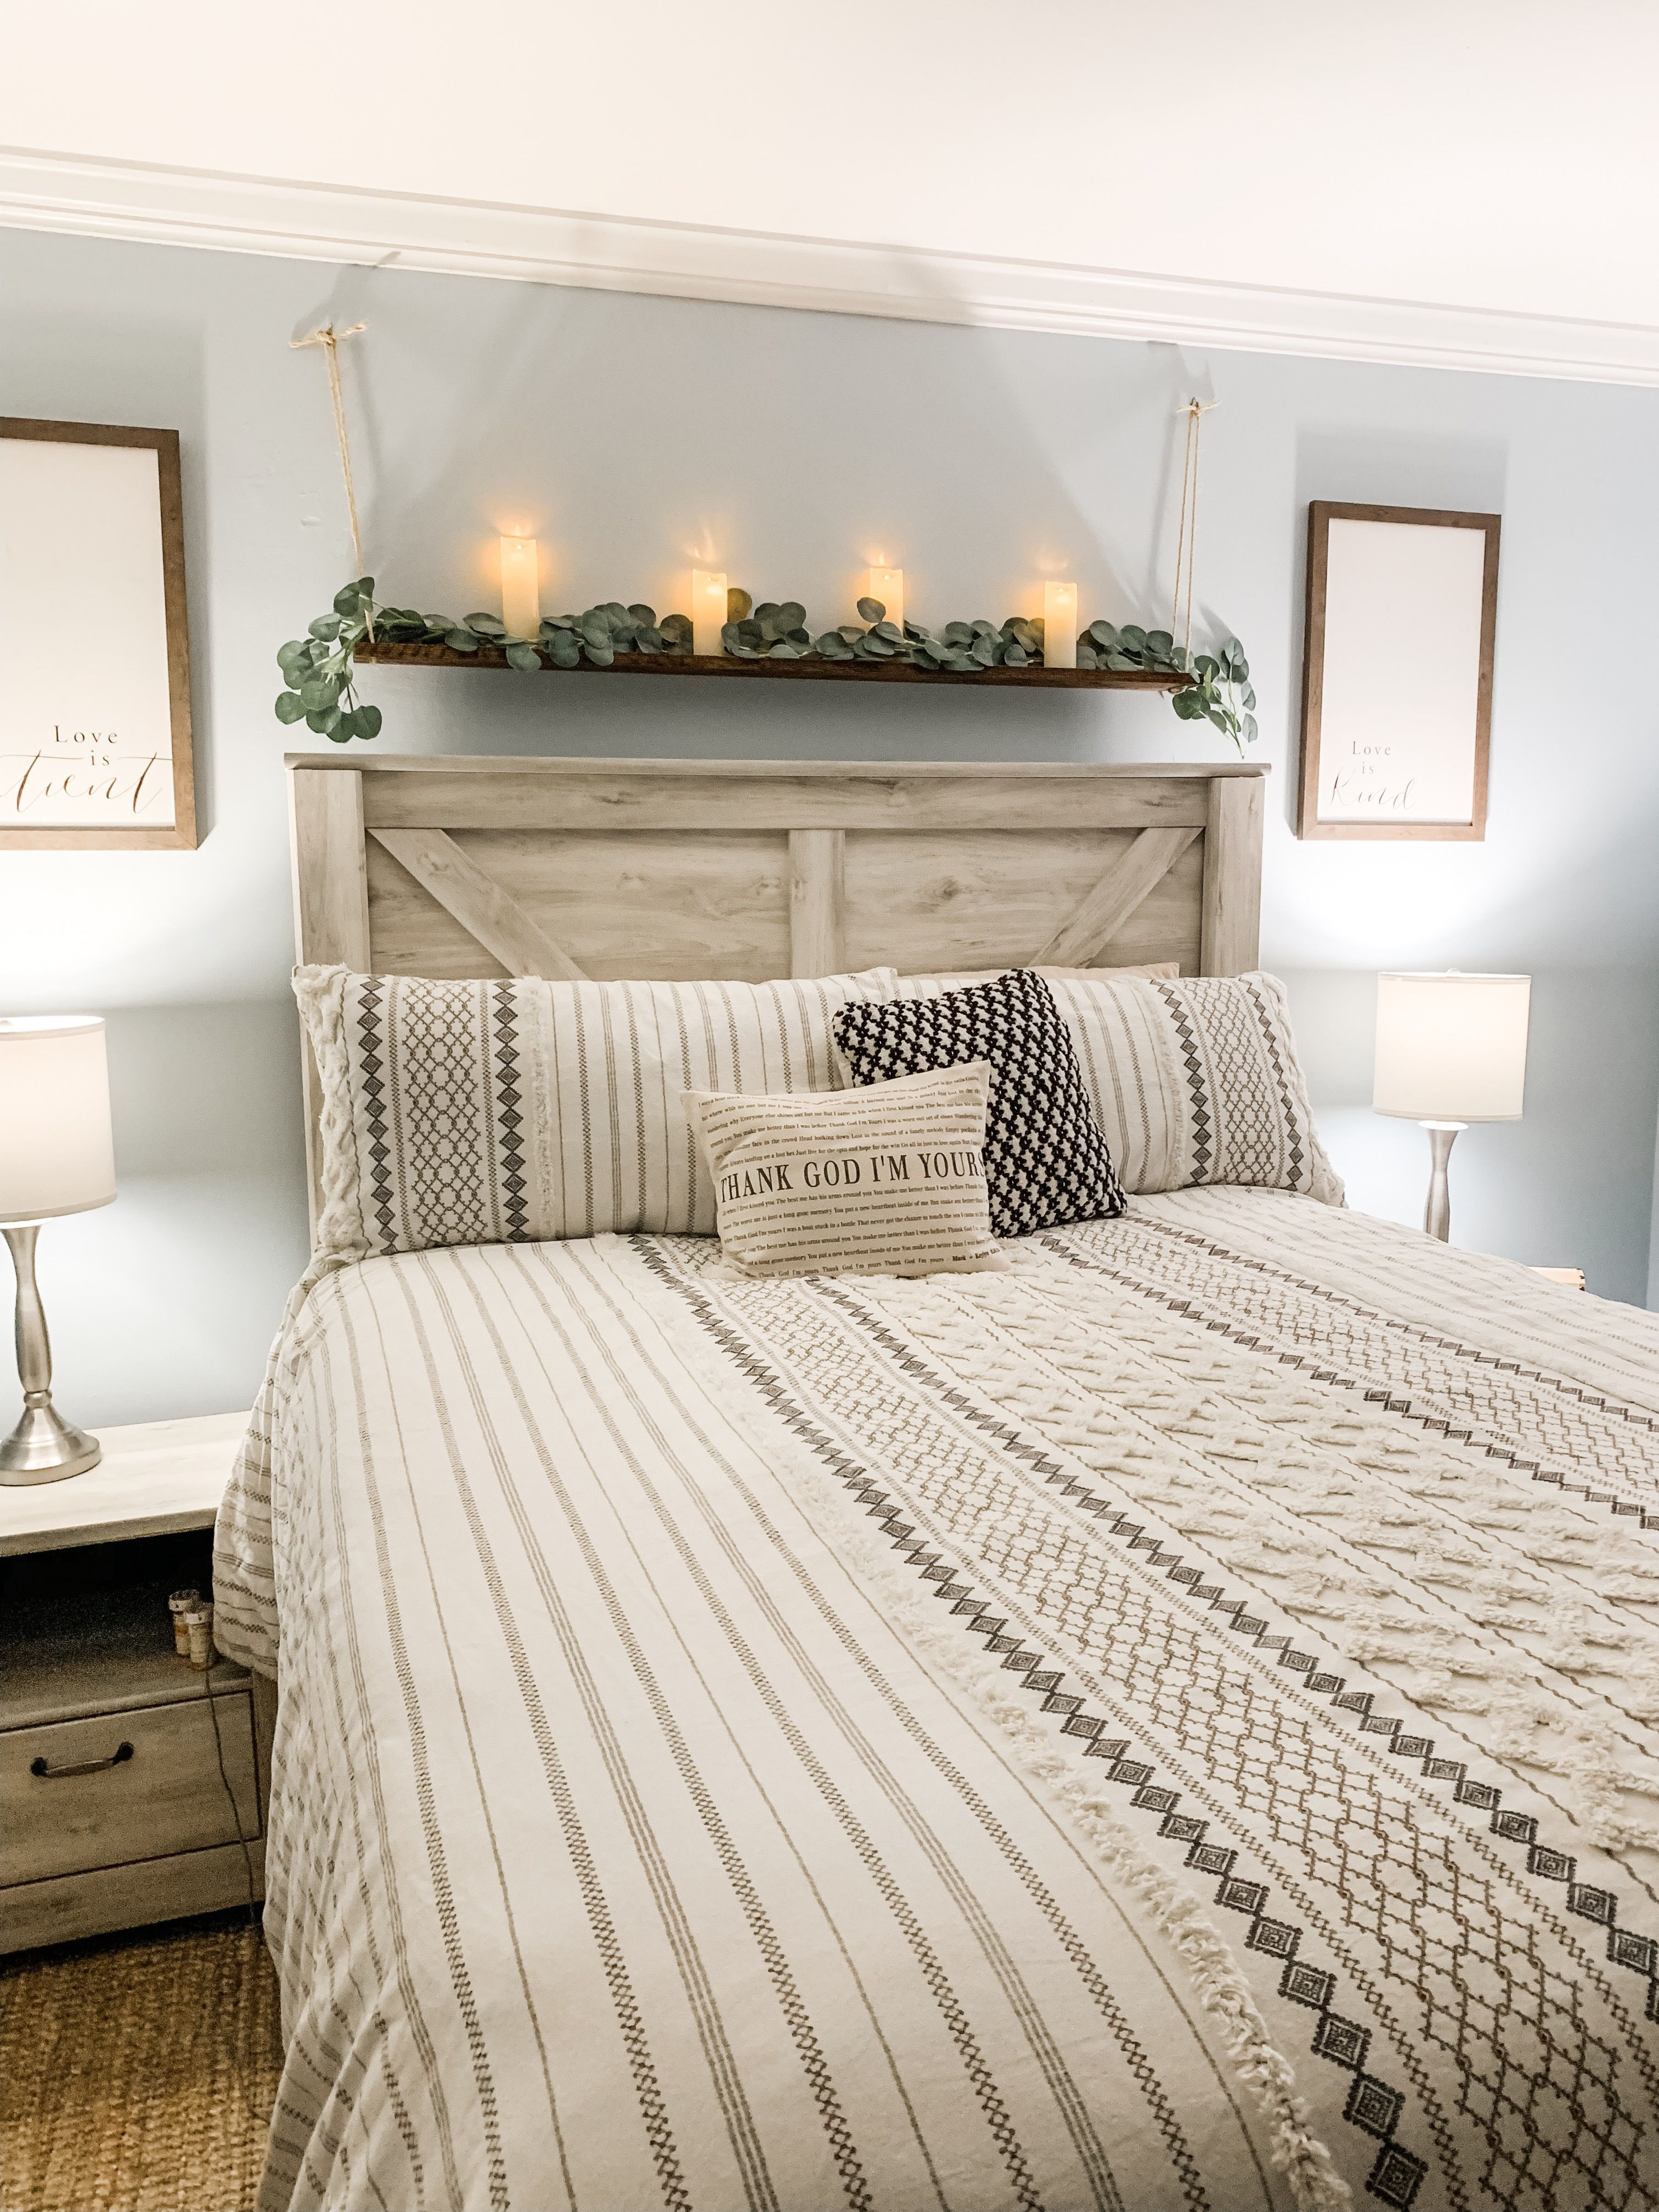 Obsessed with my new farmhouse decor over my headboard